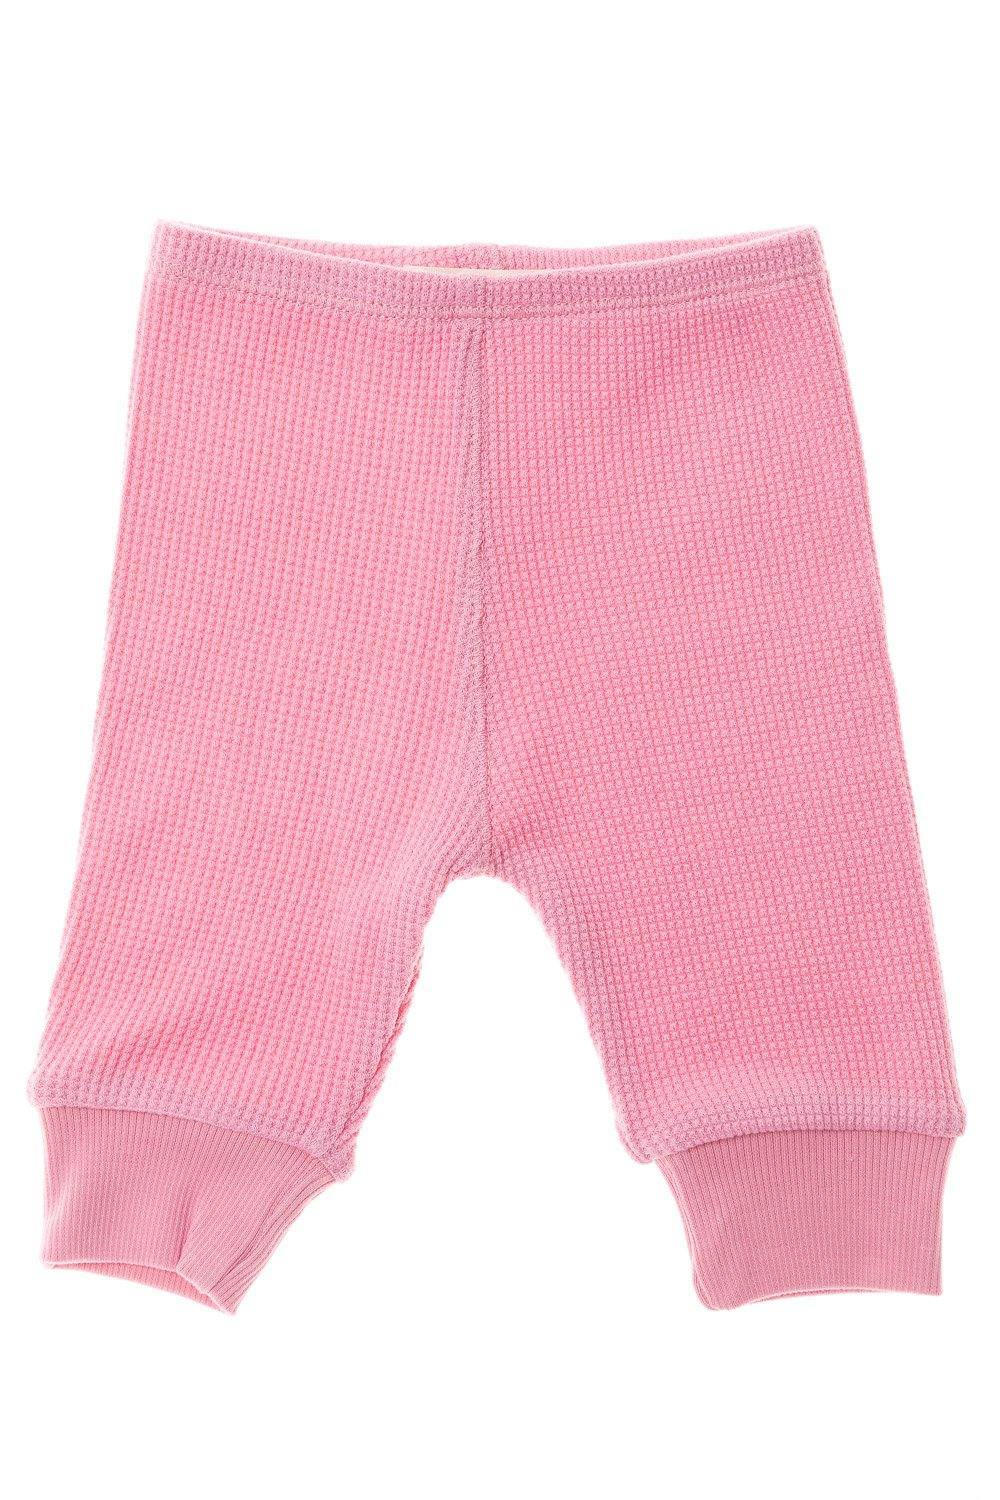 Baby Crop Legging-Coastal